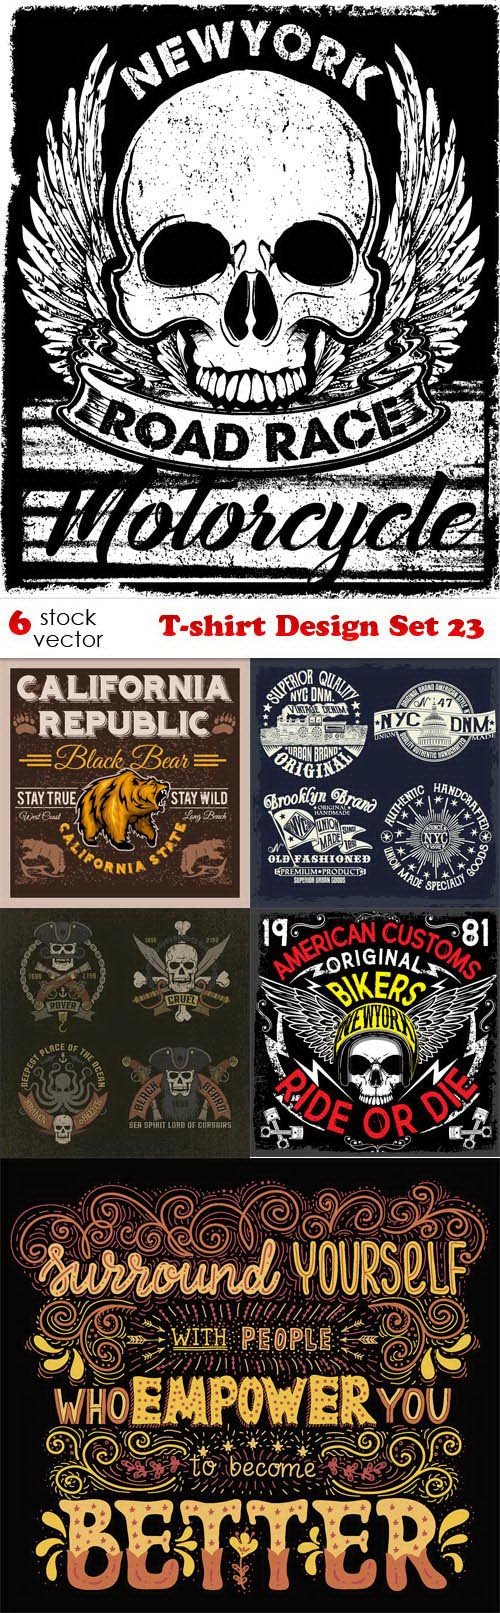 Vectors - T-shirt Design Set 23